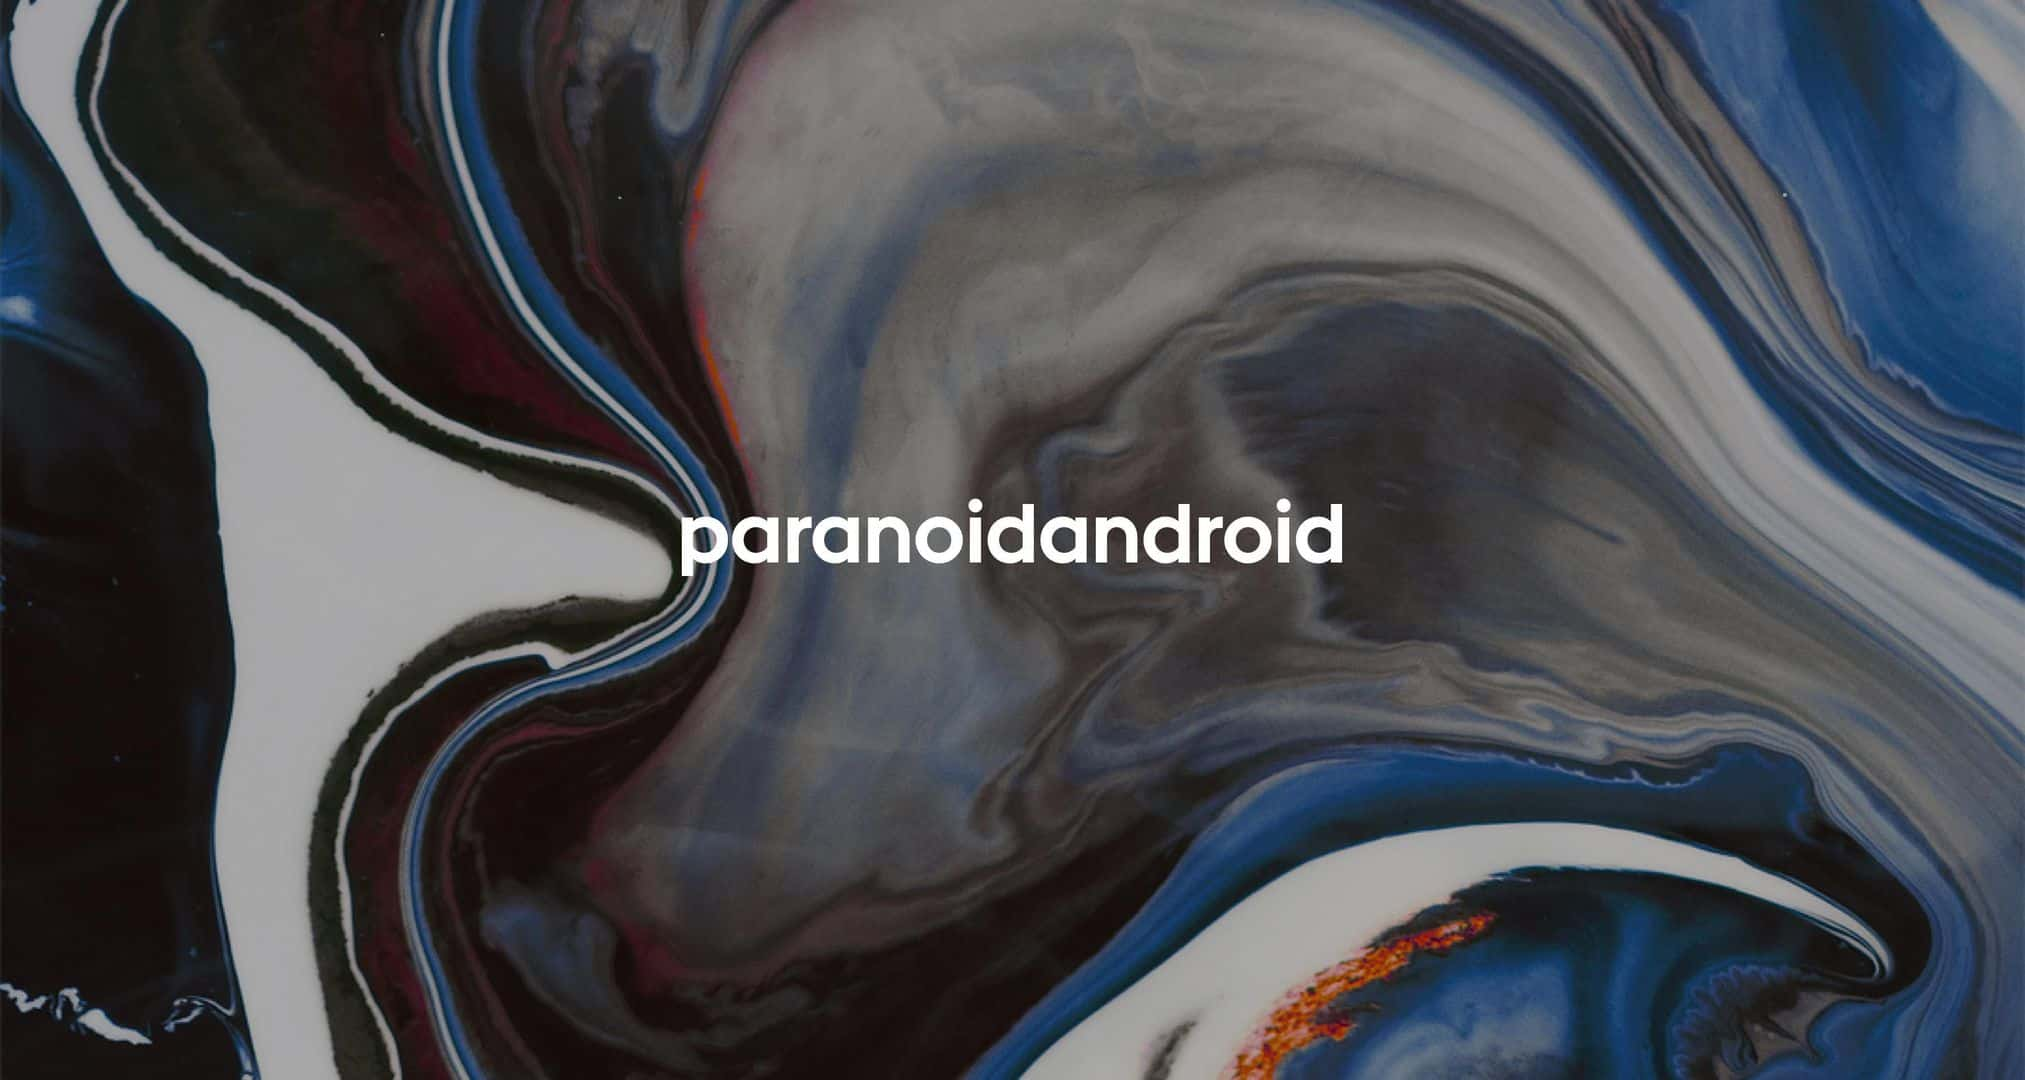 how to download paranoid android